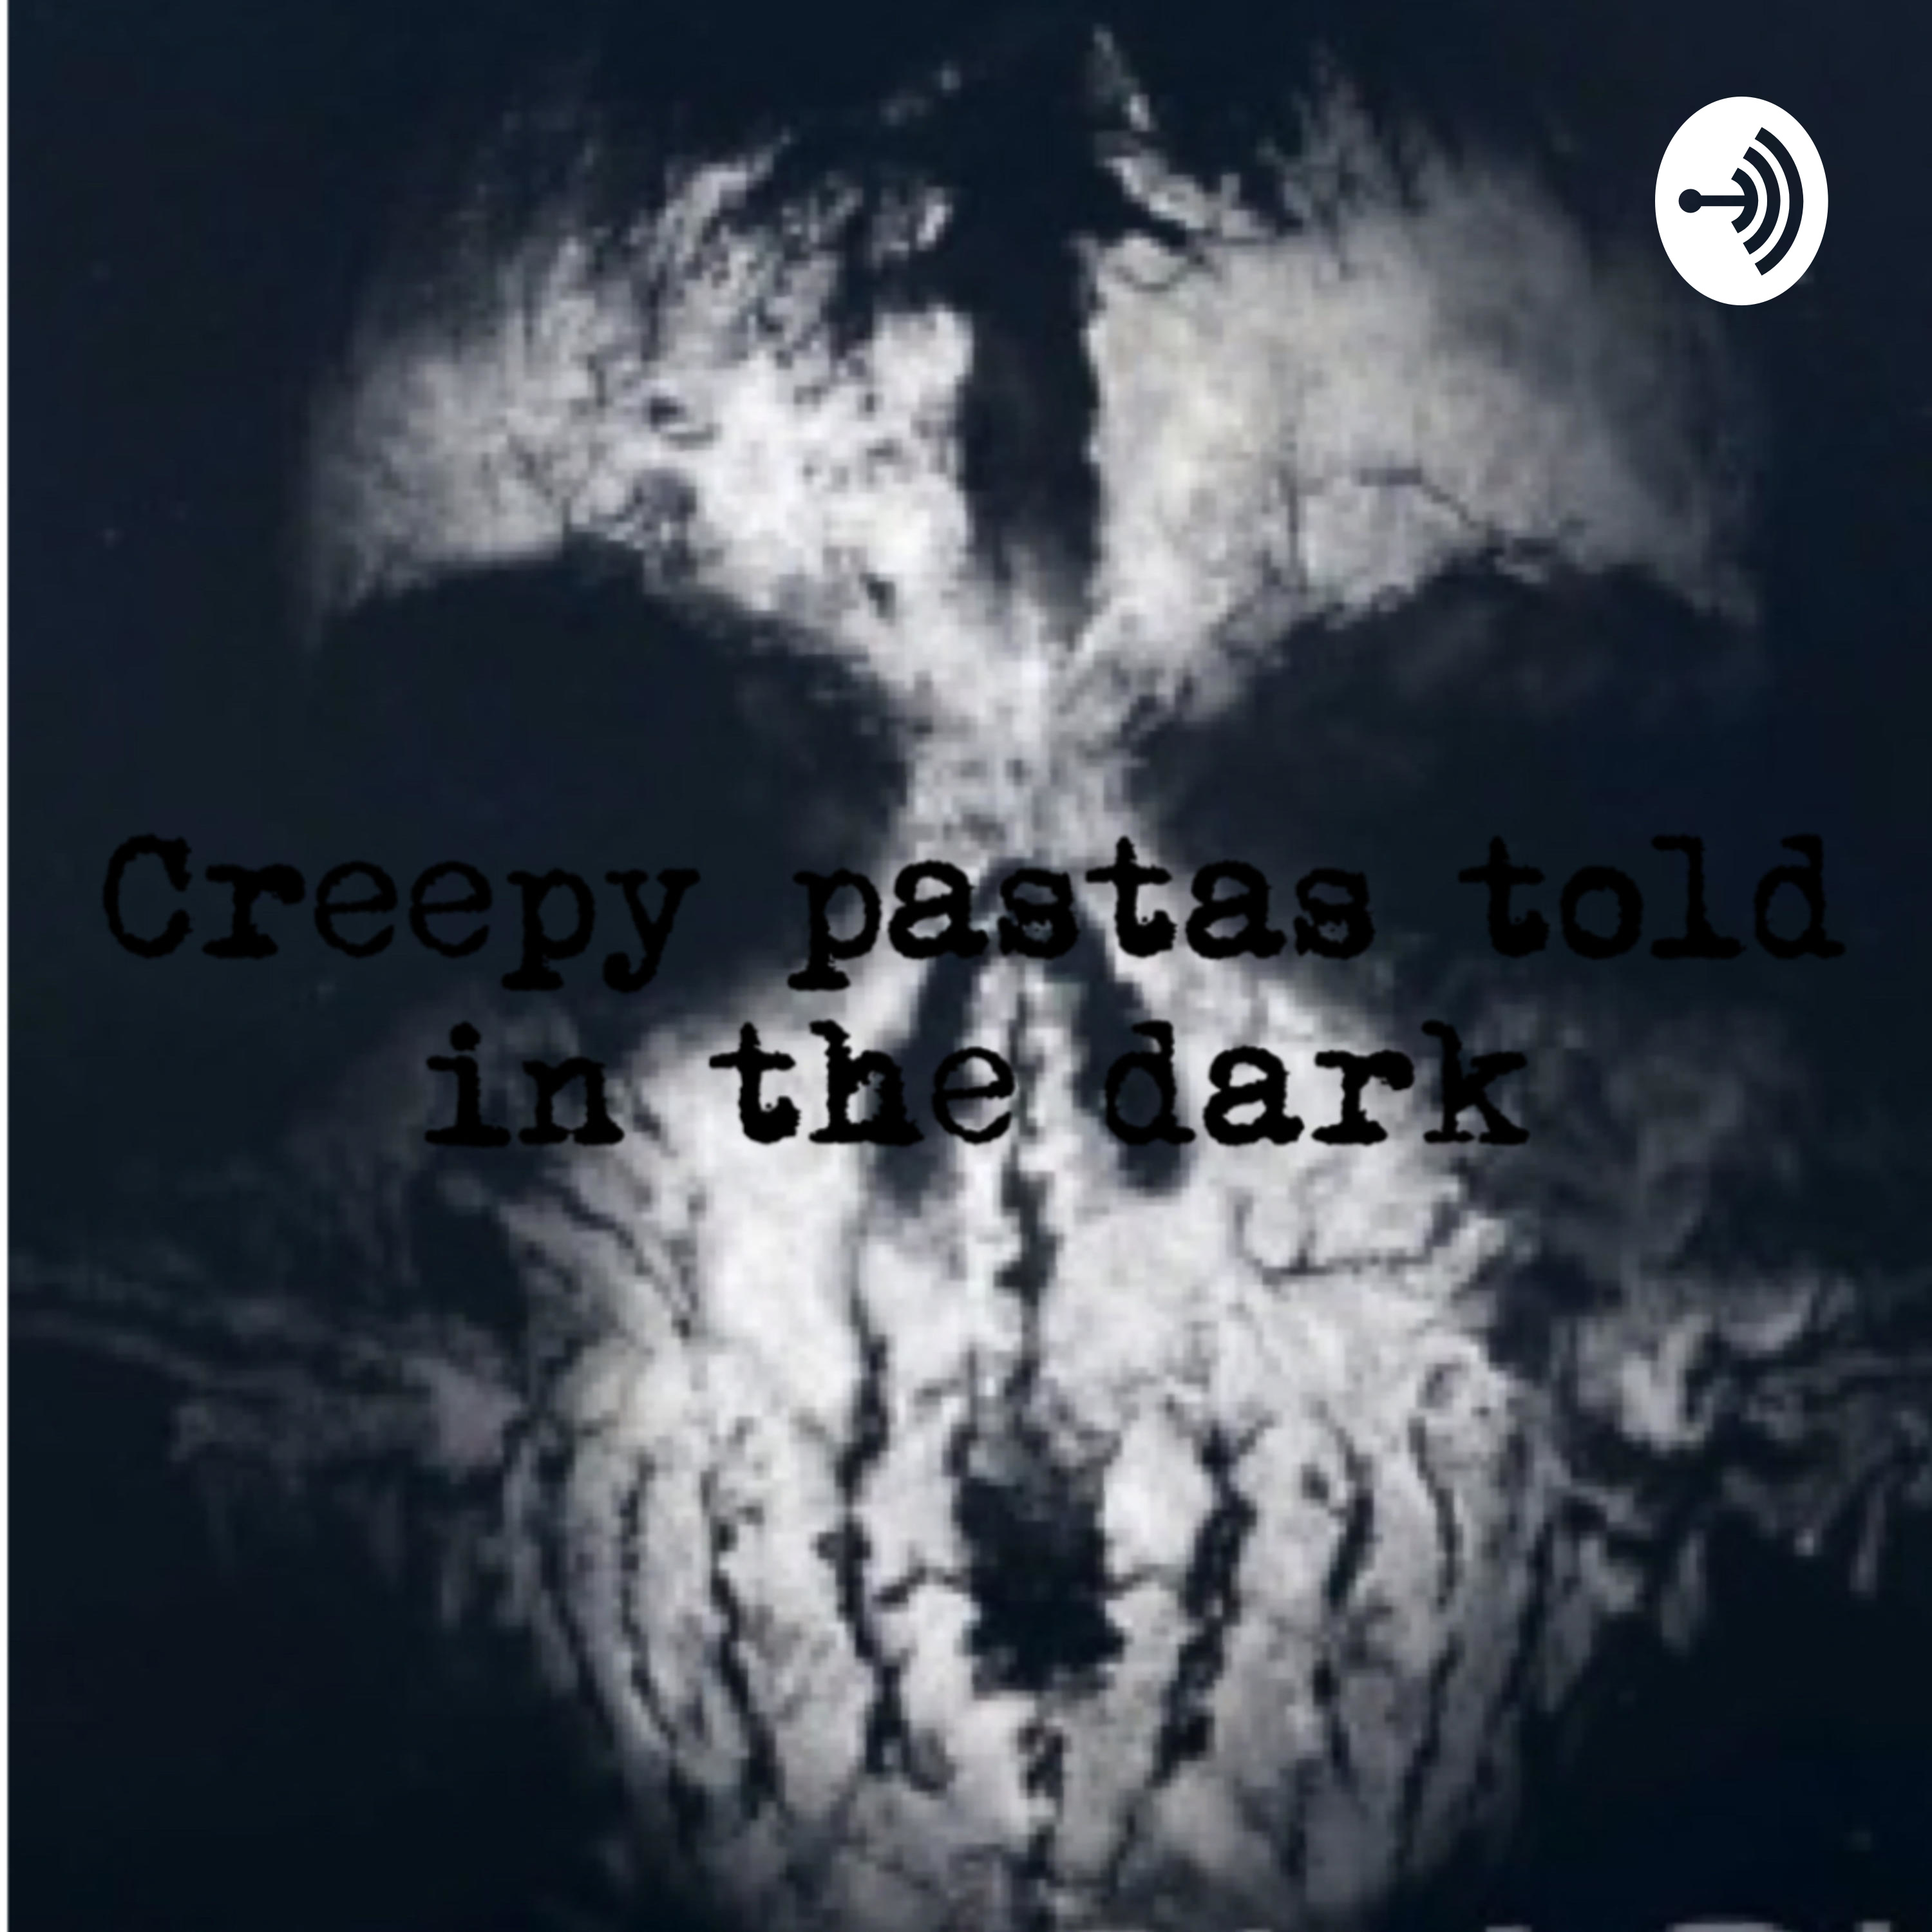 Creepy pastas told in the dark | Listen via Stitcher for Podcasts